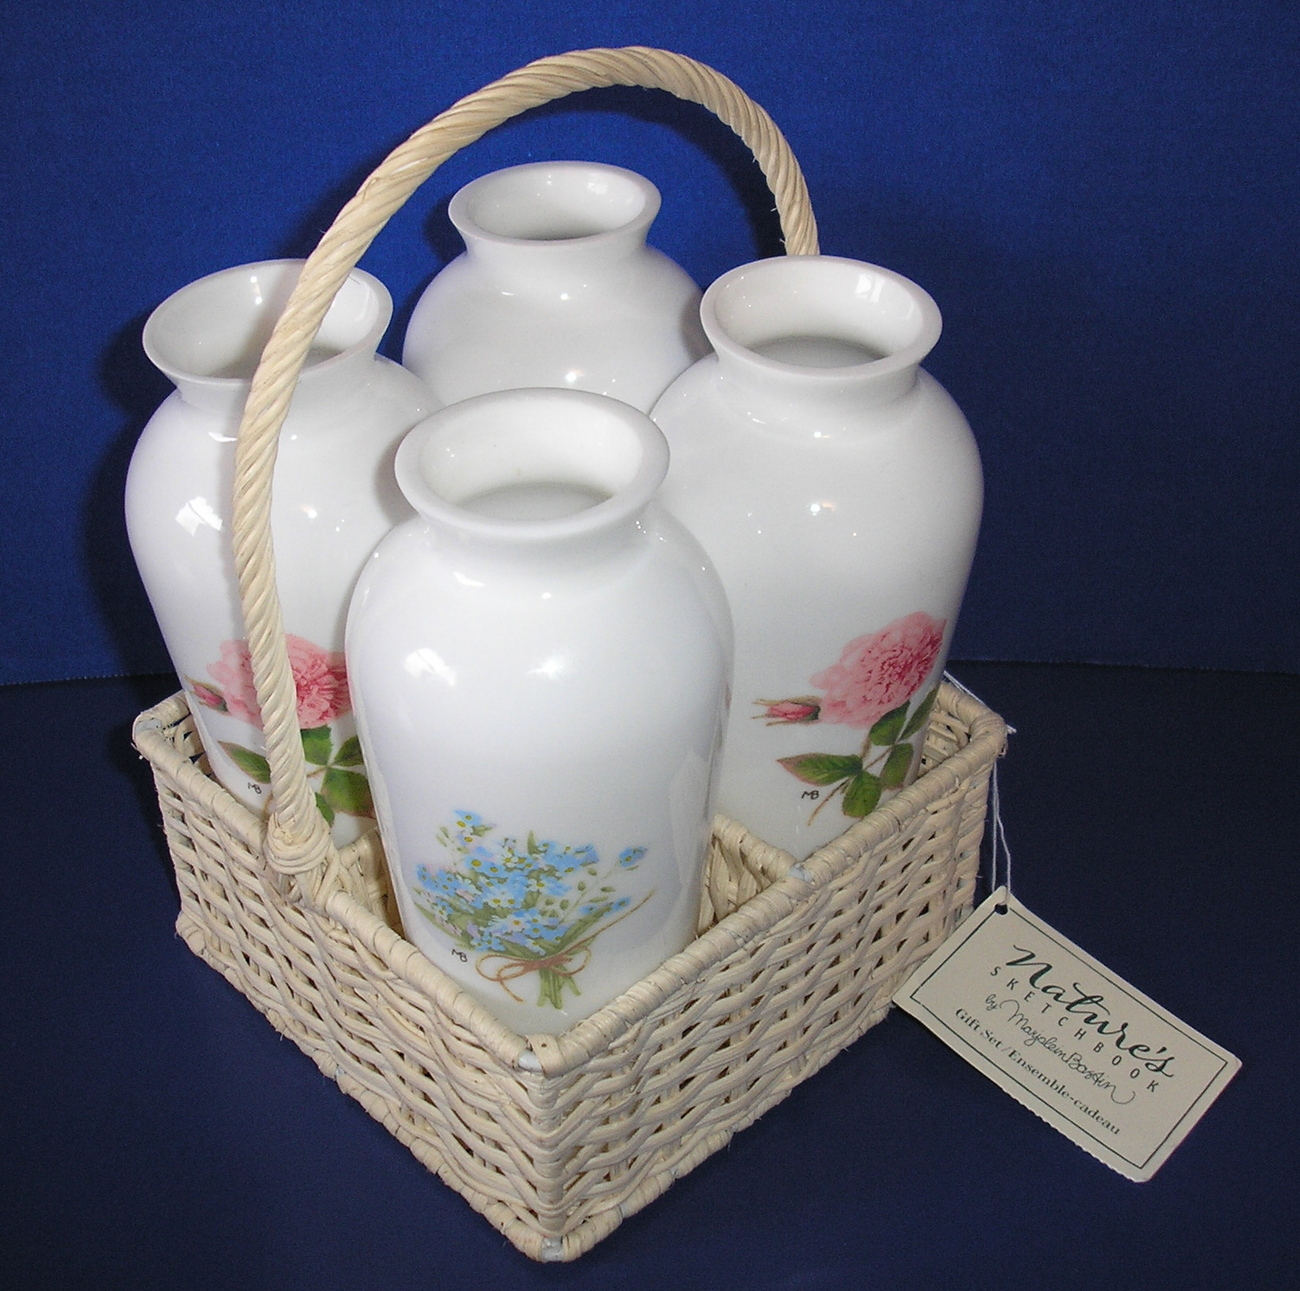 Buy hallmark gifts - Marjolein Bastin Ceramic Bud Vase Set Hallmark Gifts Natures Sketchbook Flowers